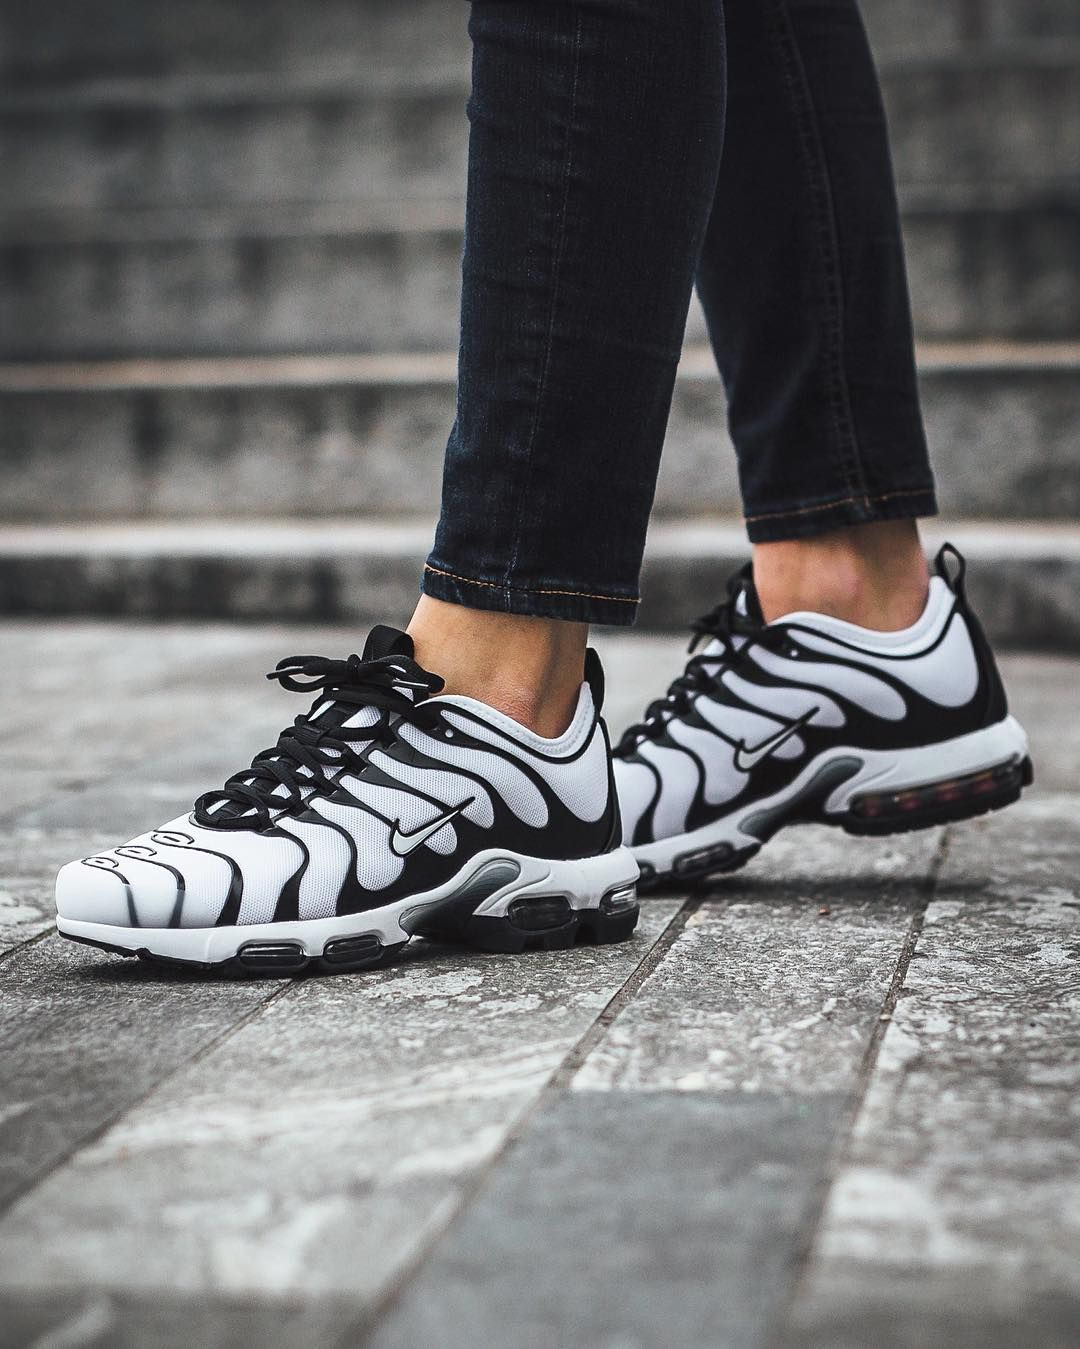 22ef5996ad Nike Wmns Air Max Plus TN Ultra: White/White-Black | Nike❤ in ...